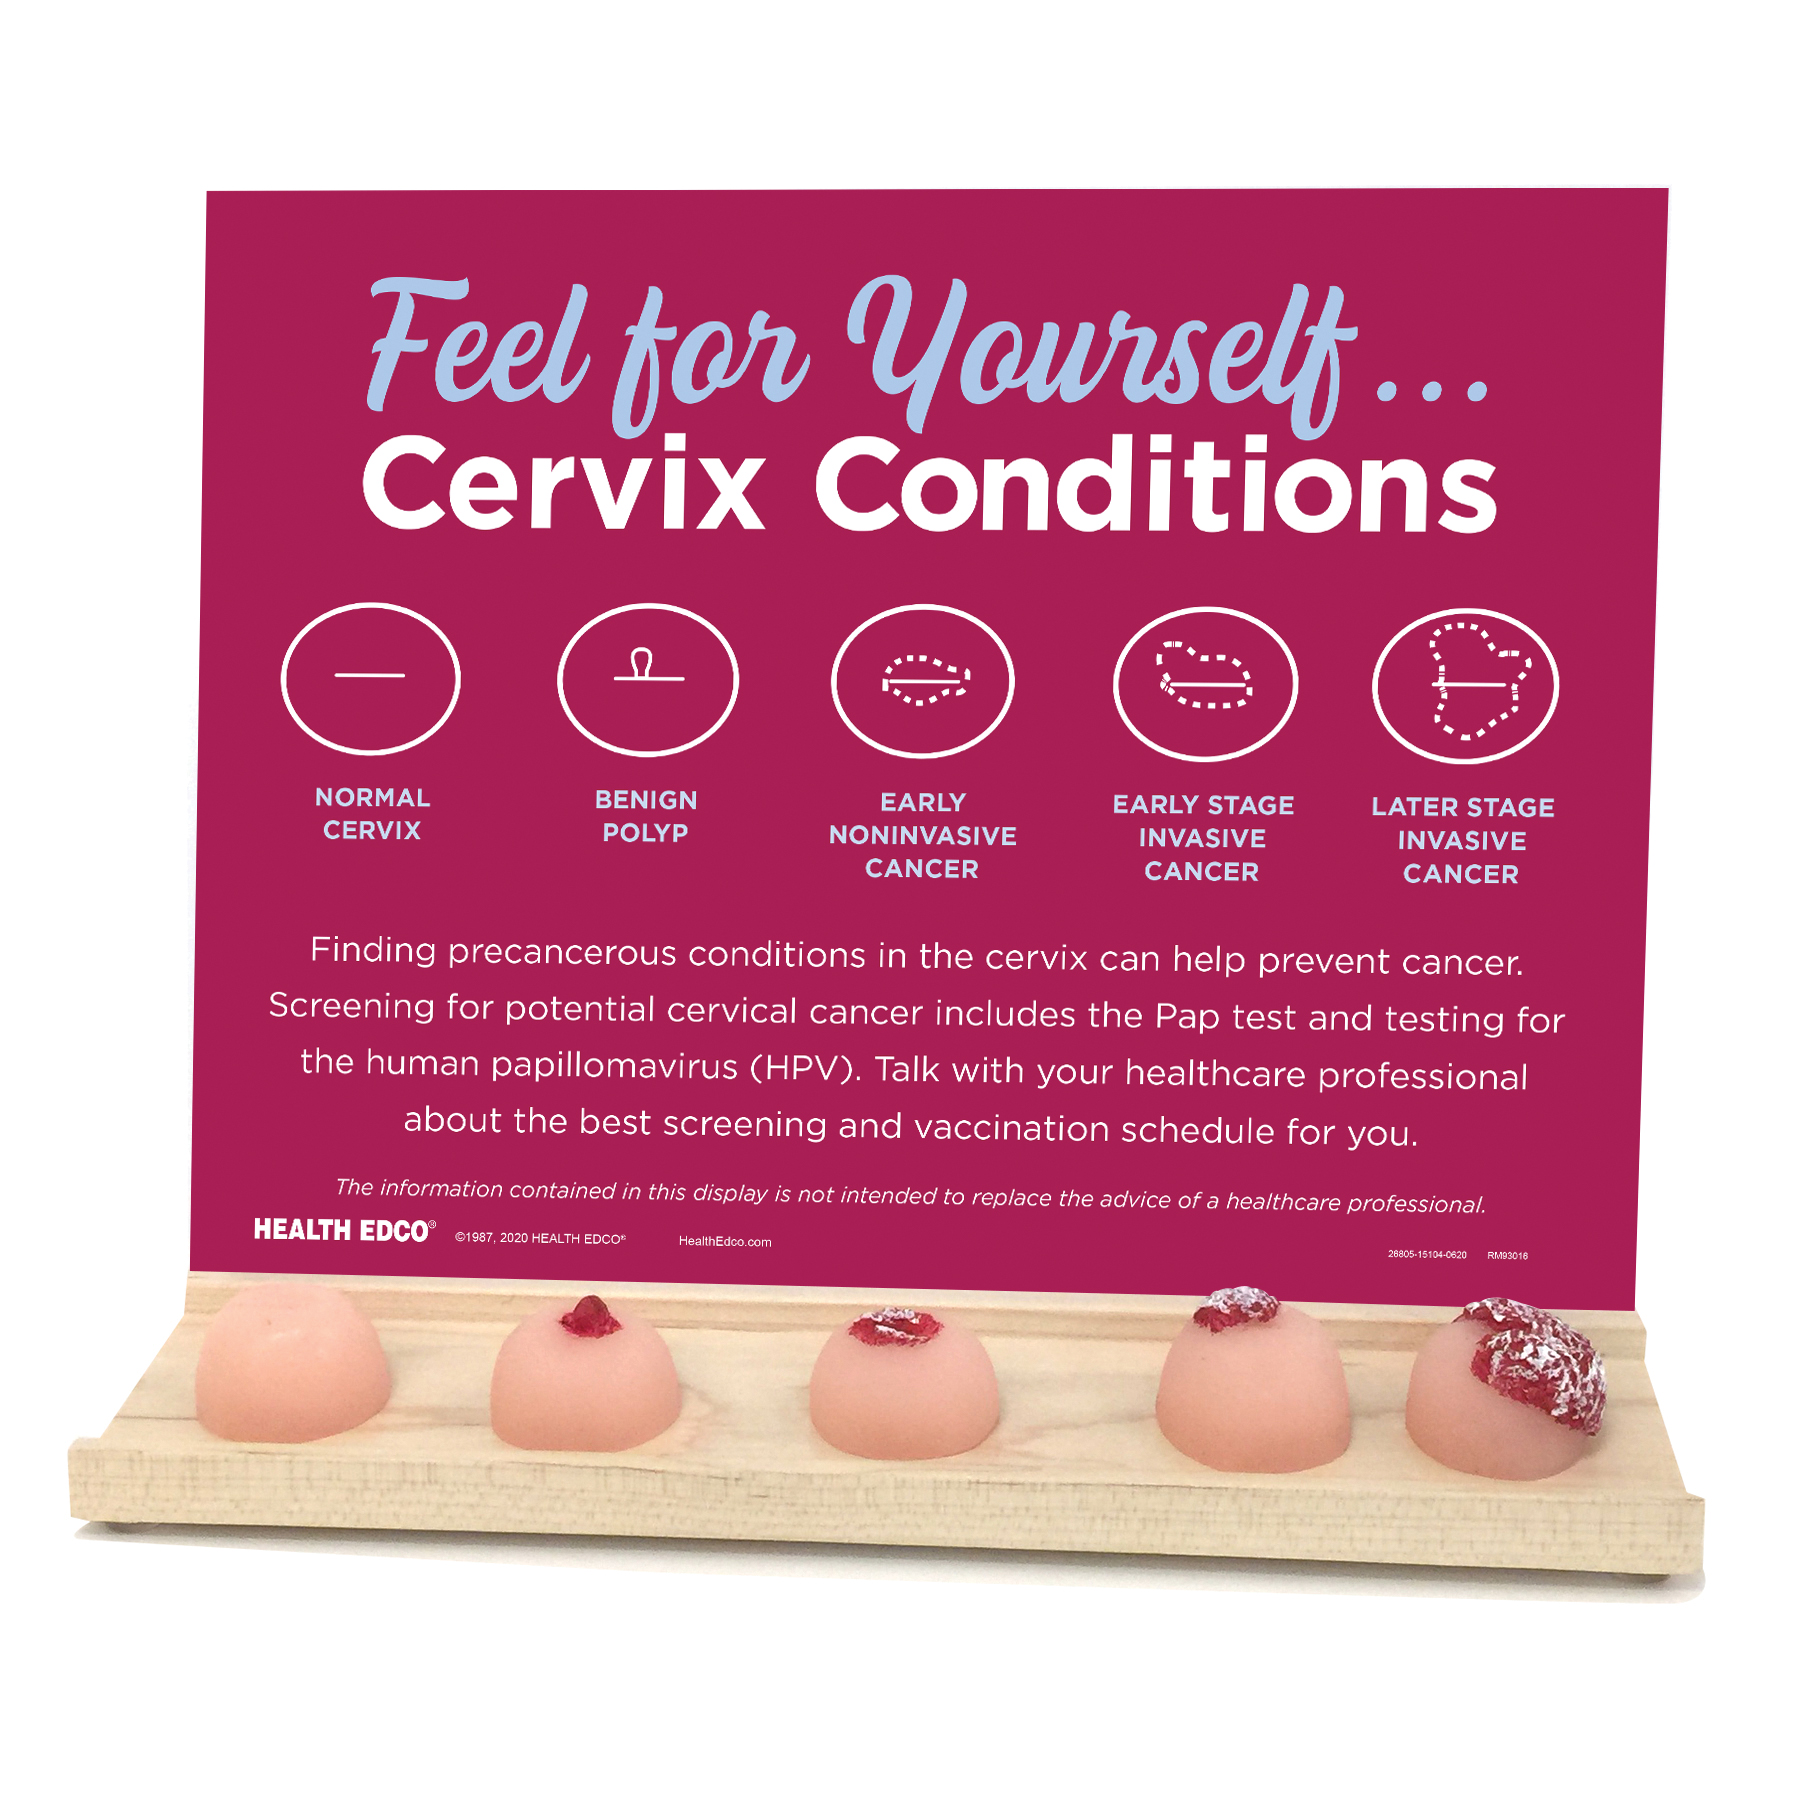 Cervix Conditions Display, 5 cervix conditions with attached tray of realistic feeling cervix condition models, promotes cervical screening PAP test and HPV testing, Health Edco, 26805